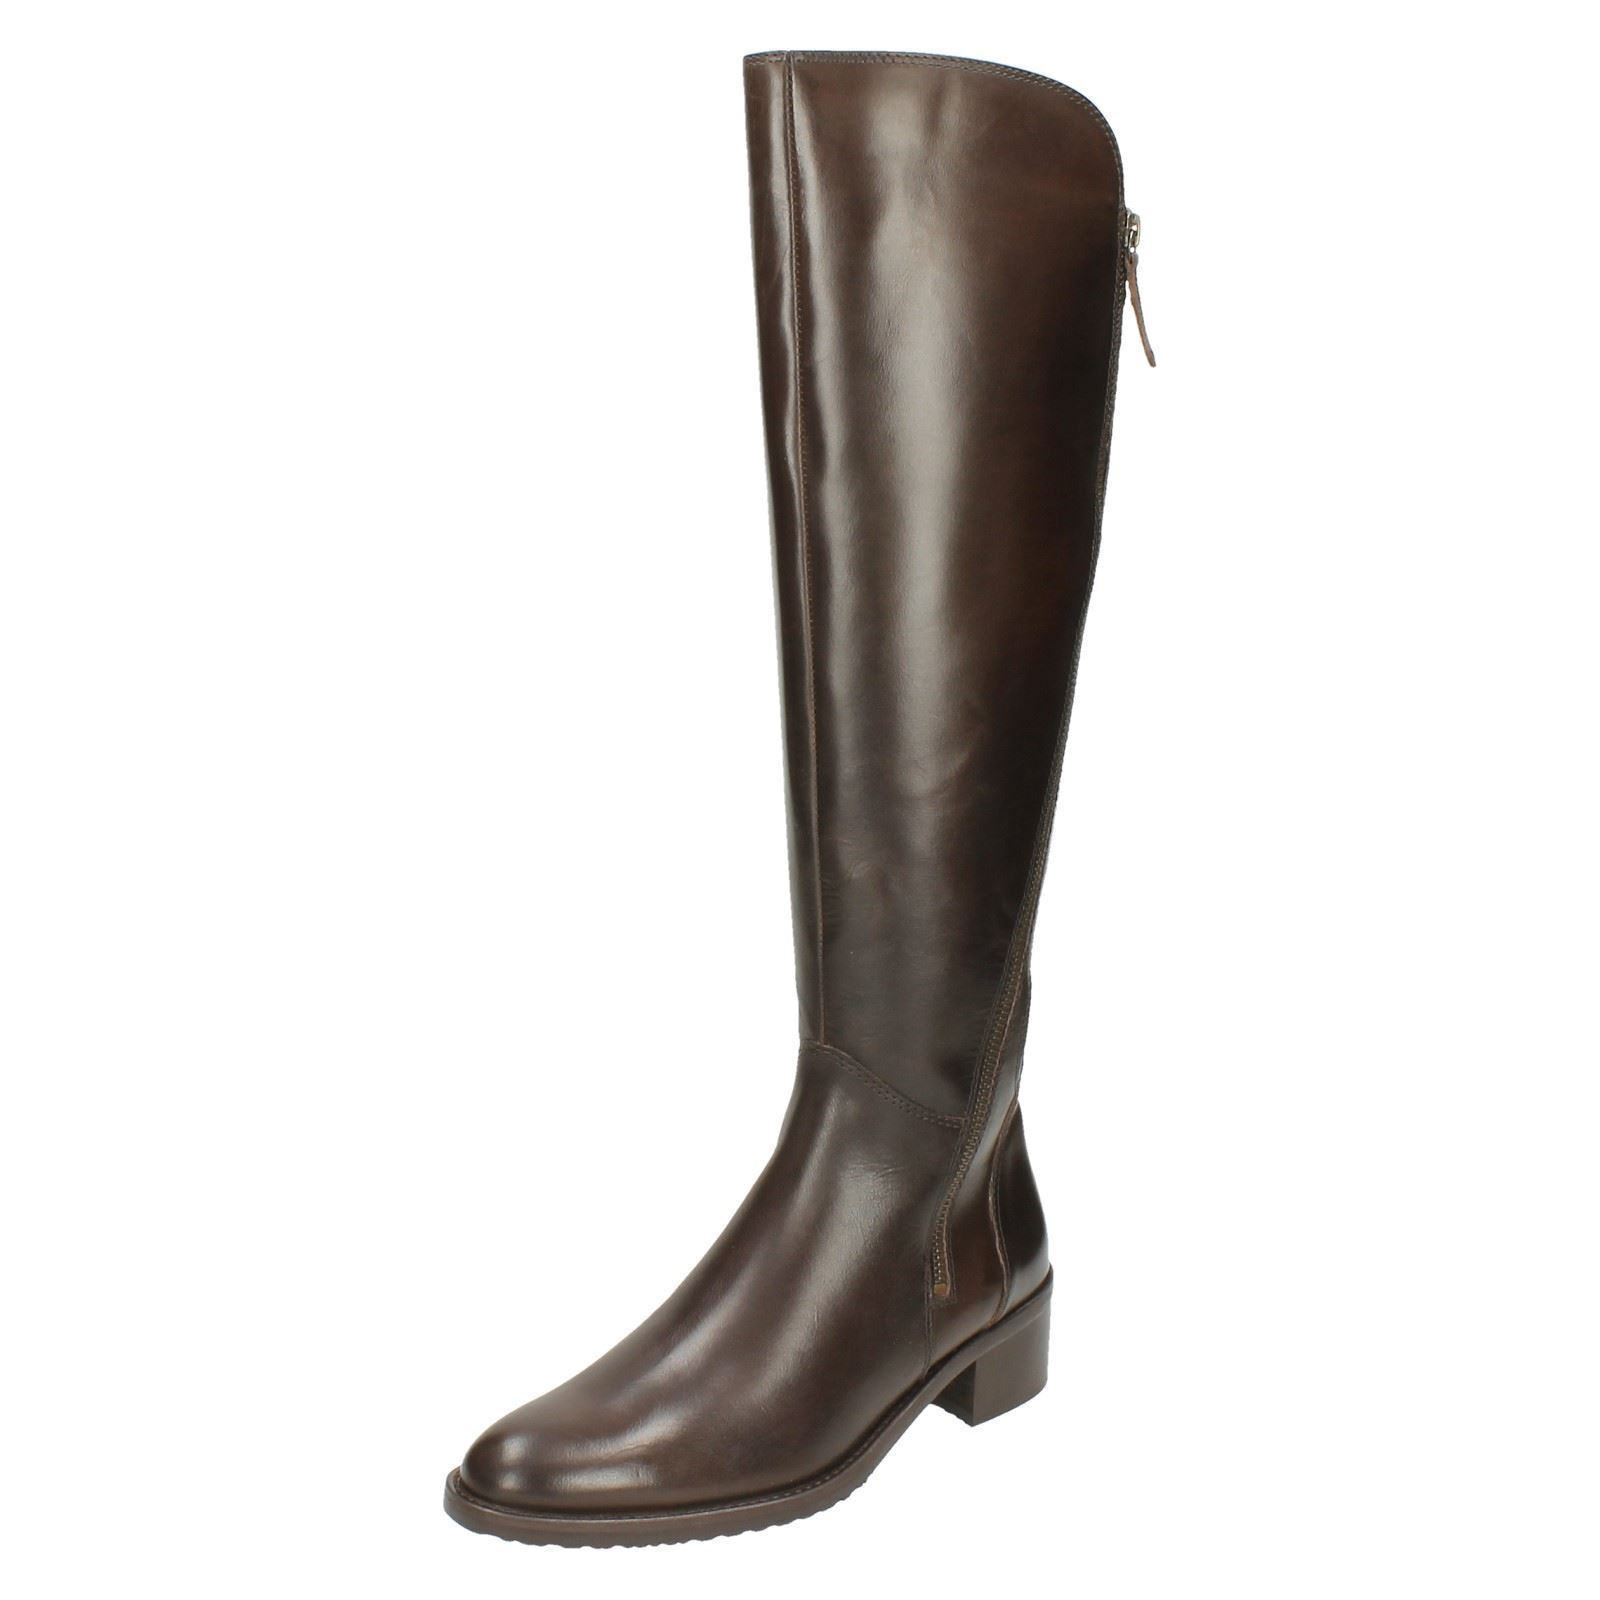 LADIES CLARKS LEATHER ZIP POINTED TOE LONG LEG RIDING BOOTS VALANA MELROSE